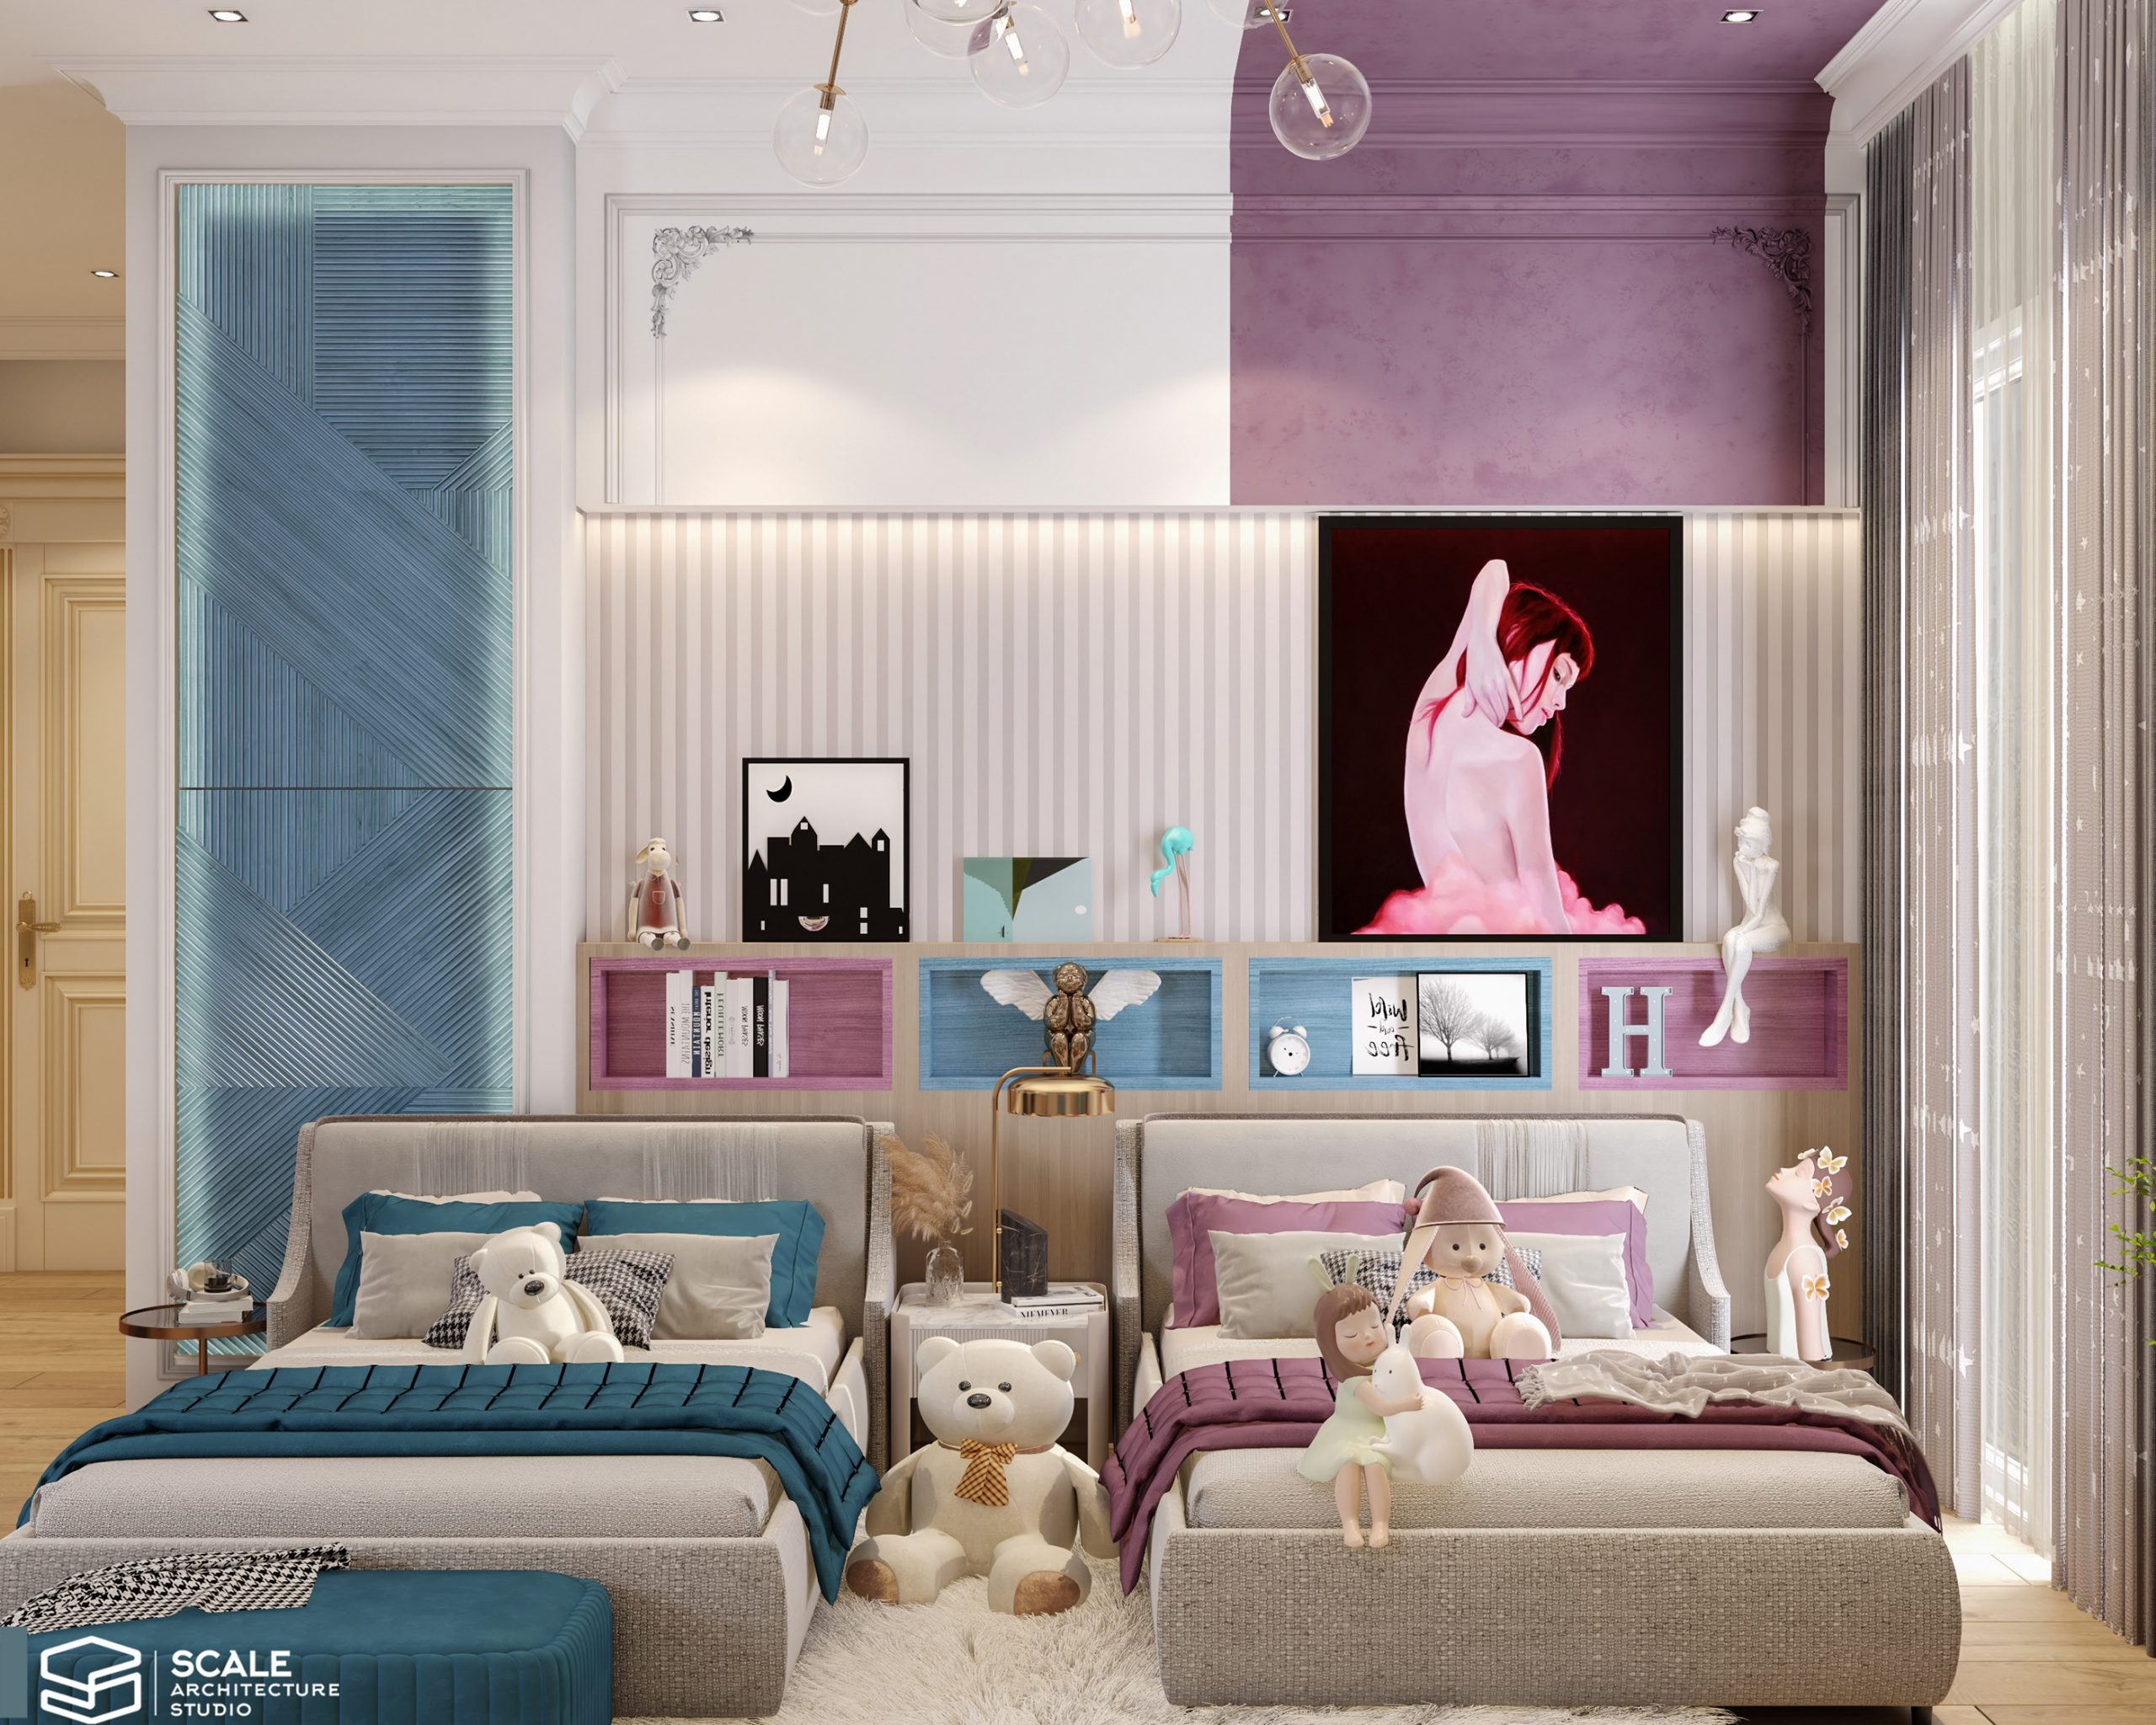 Adorable Pink and Blue Theme Bedroom ideas for girl and boy